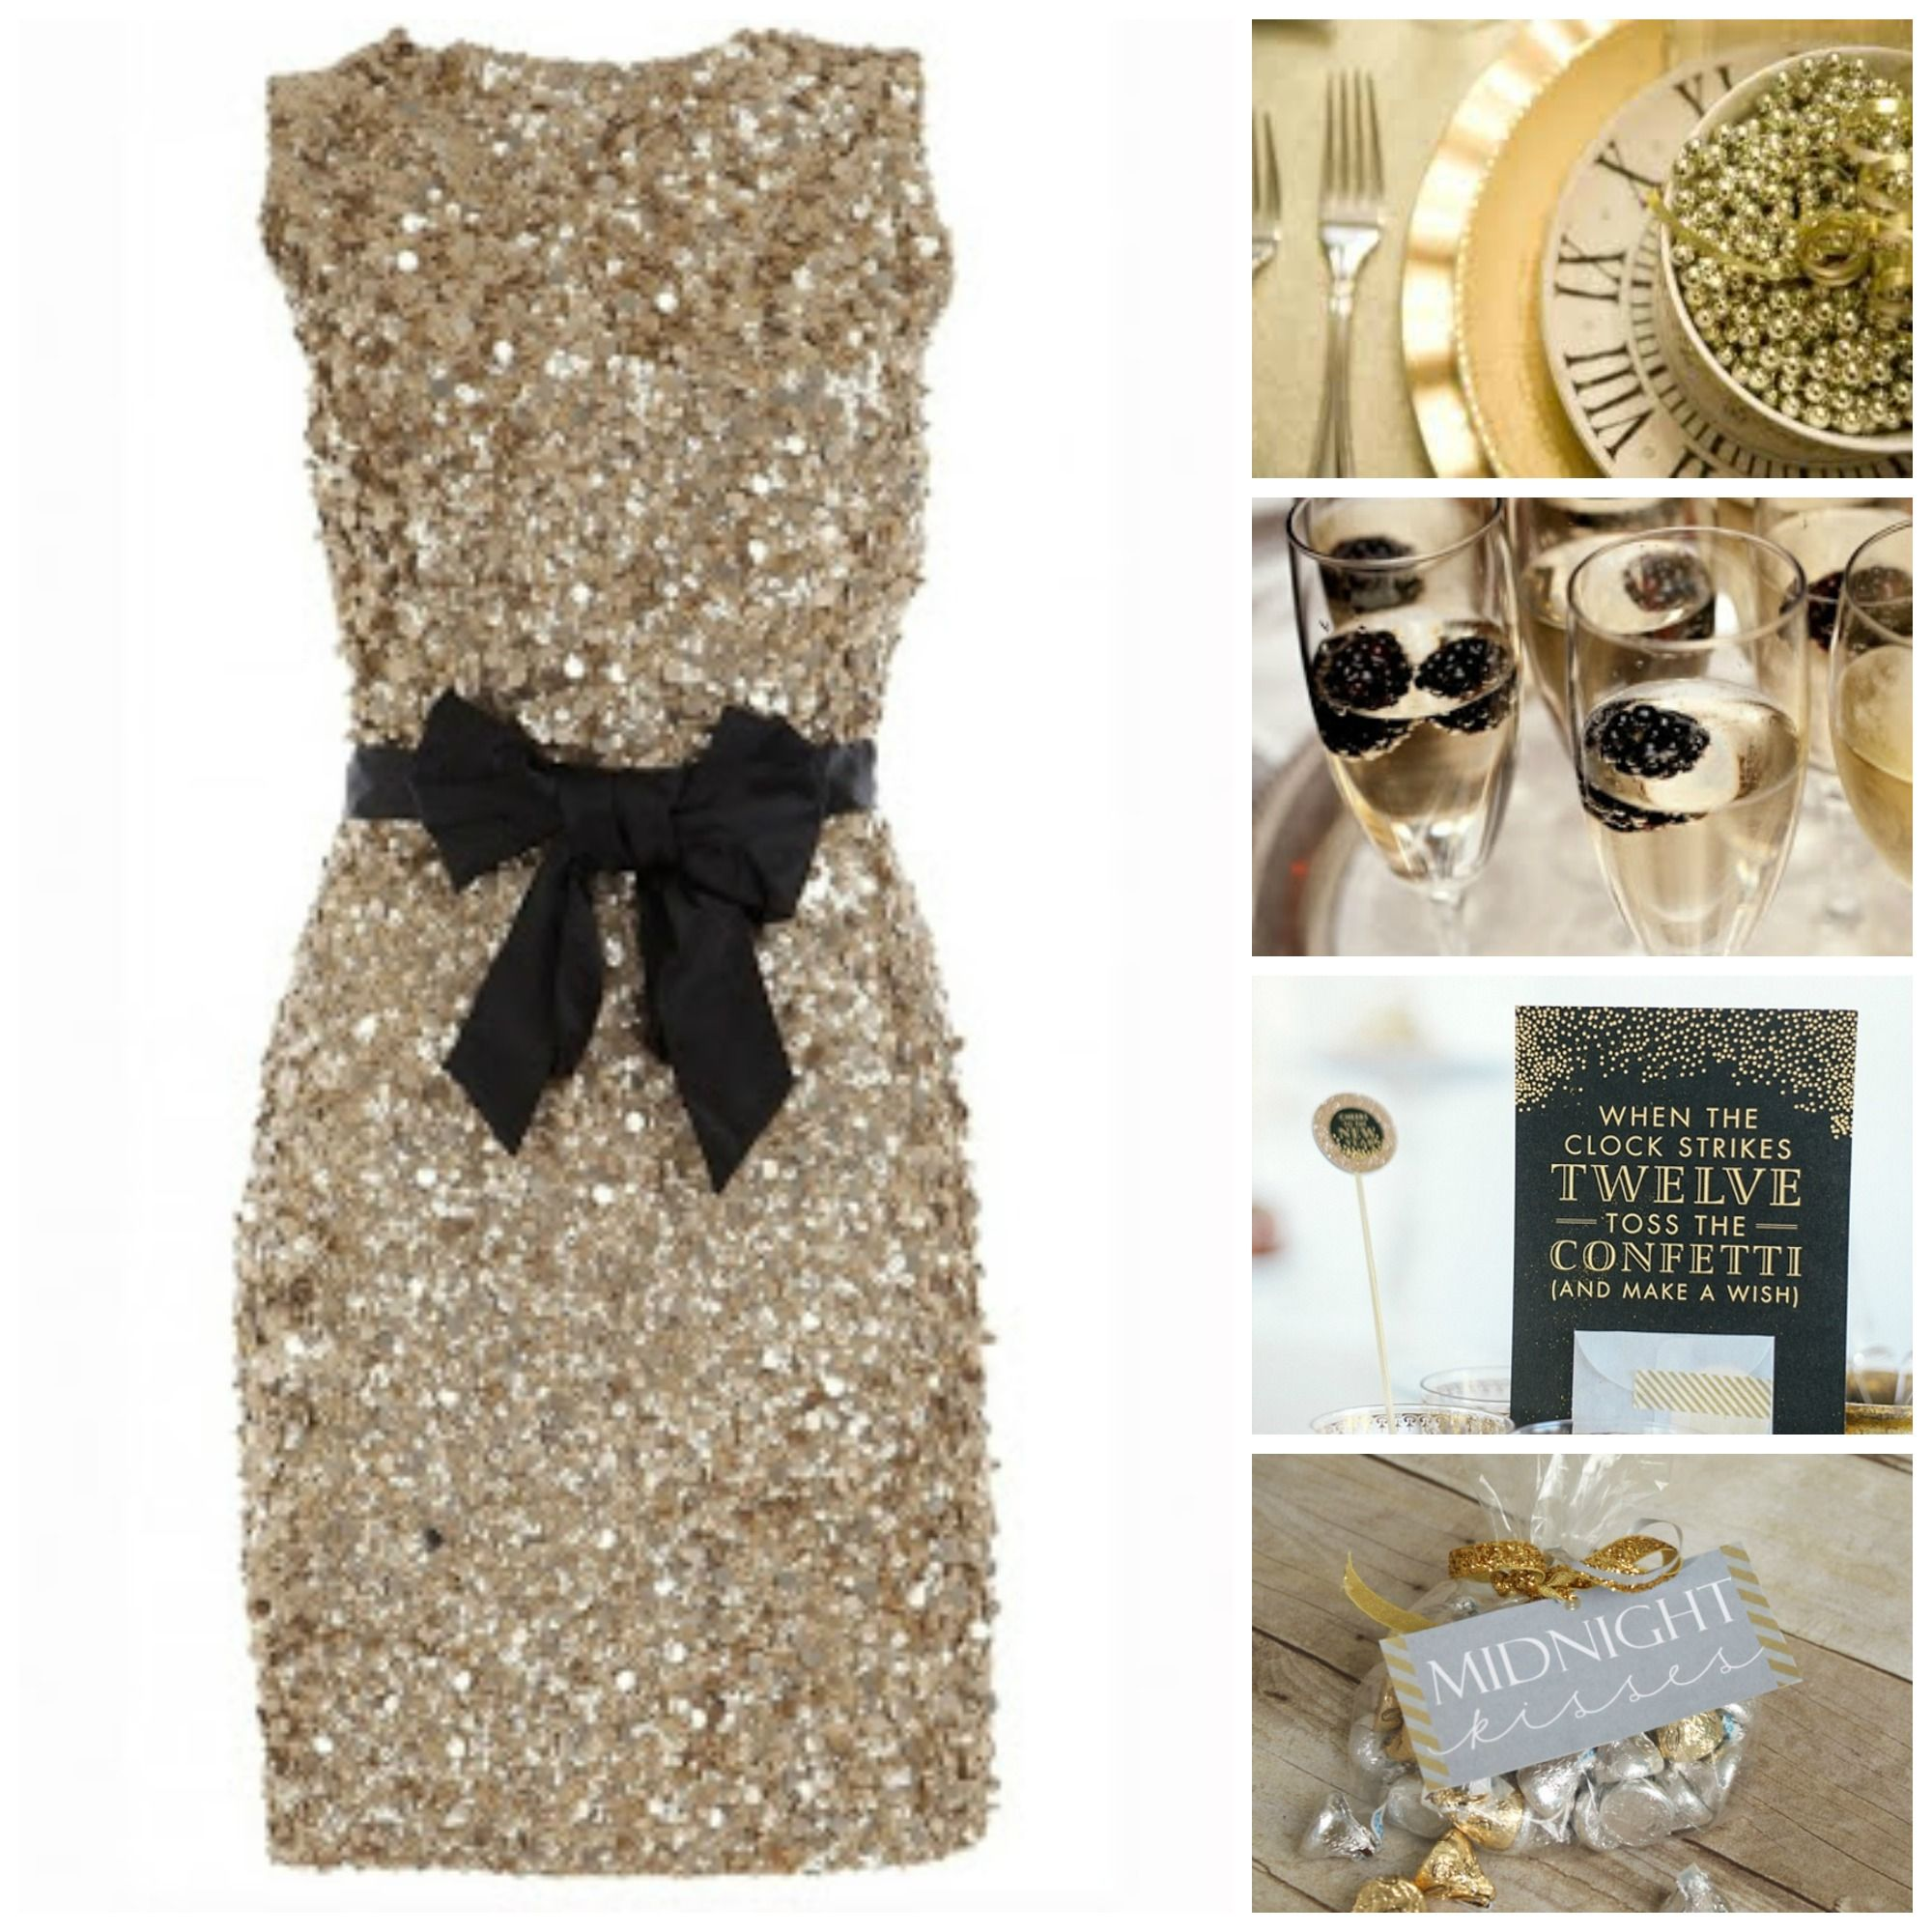 30th Wedding Anniversary Dress: Silver Sparkly Wedding Vow Renewal Dress